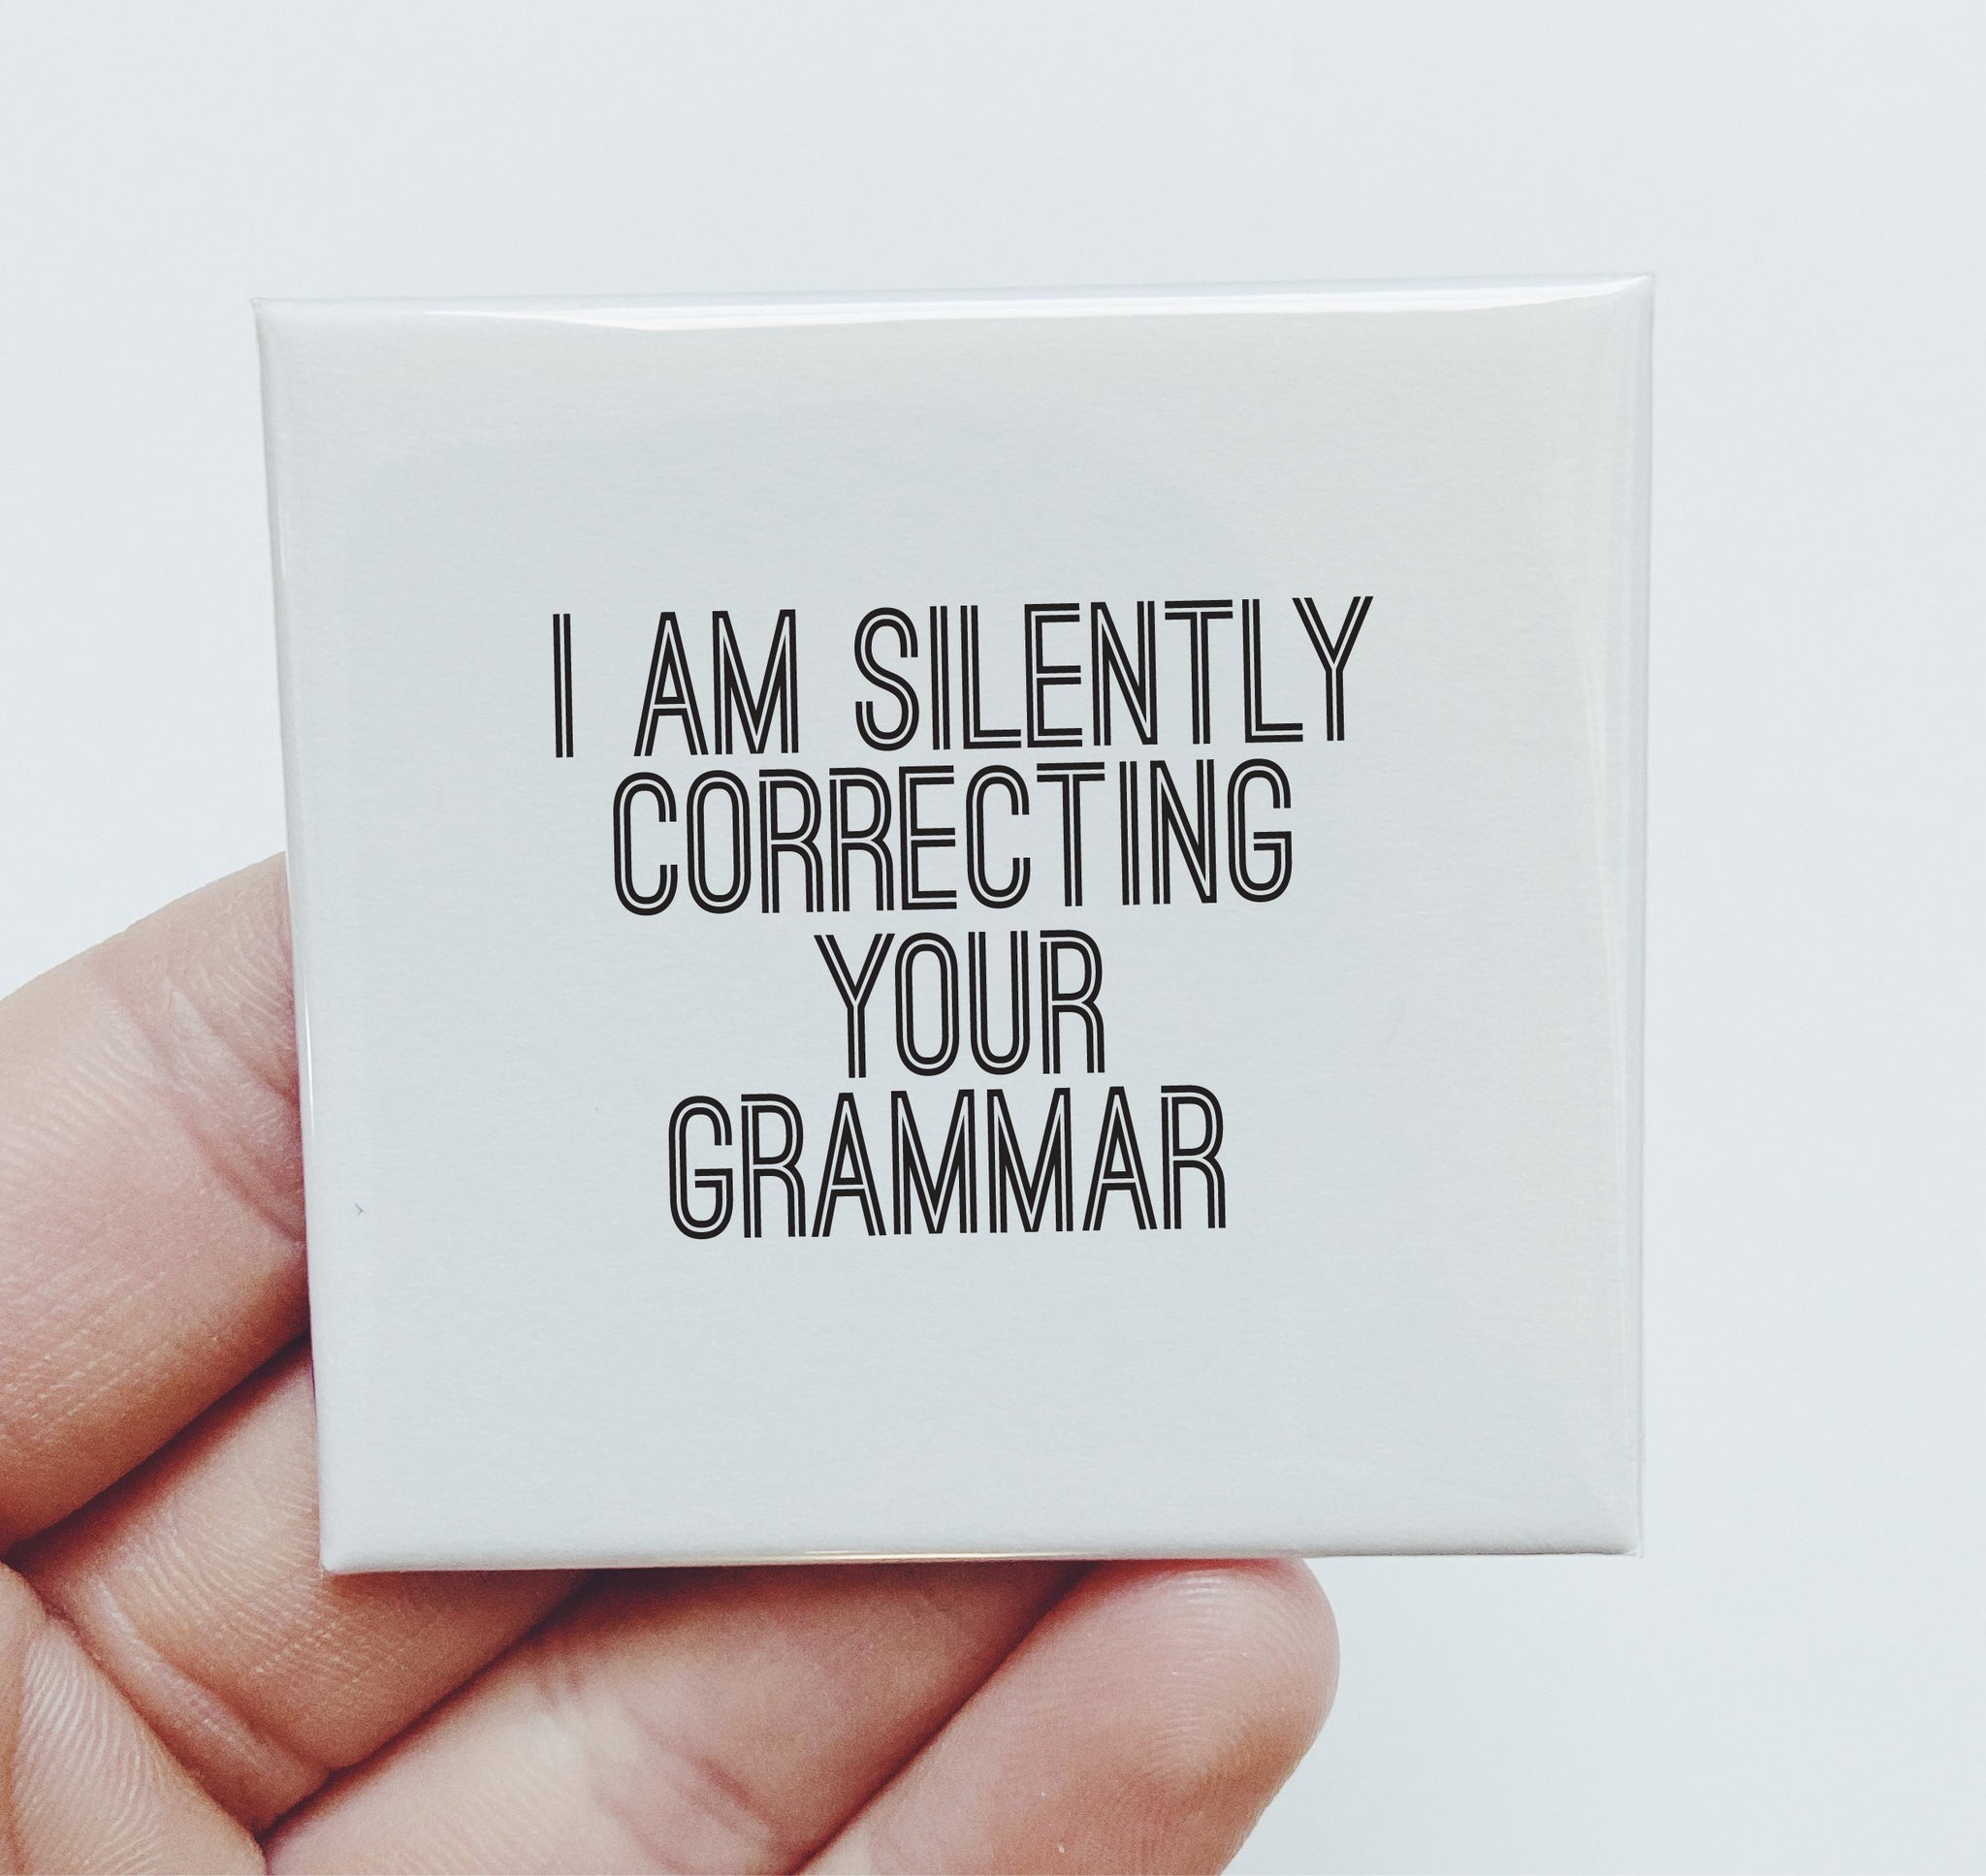 Magnet: I am silently correcting your grammar